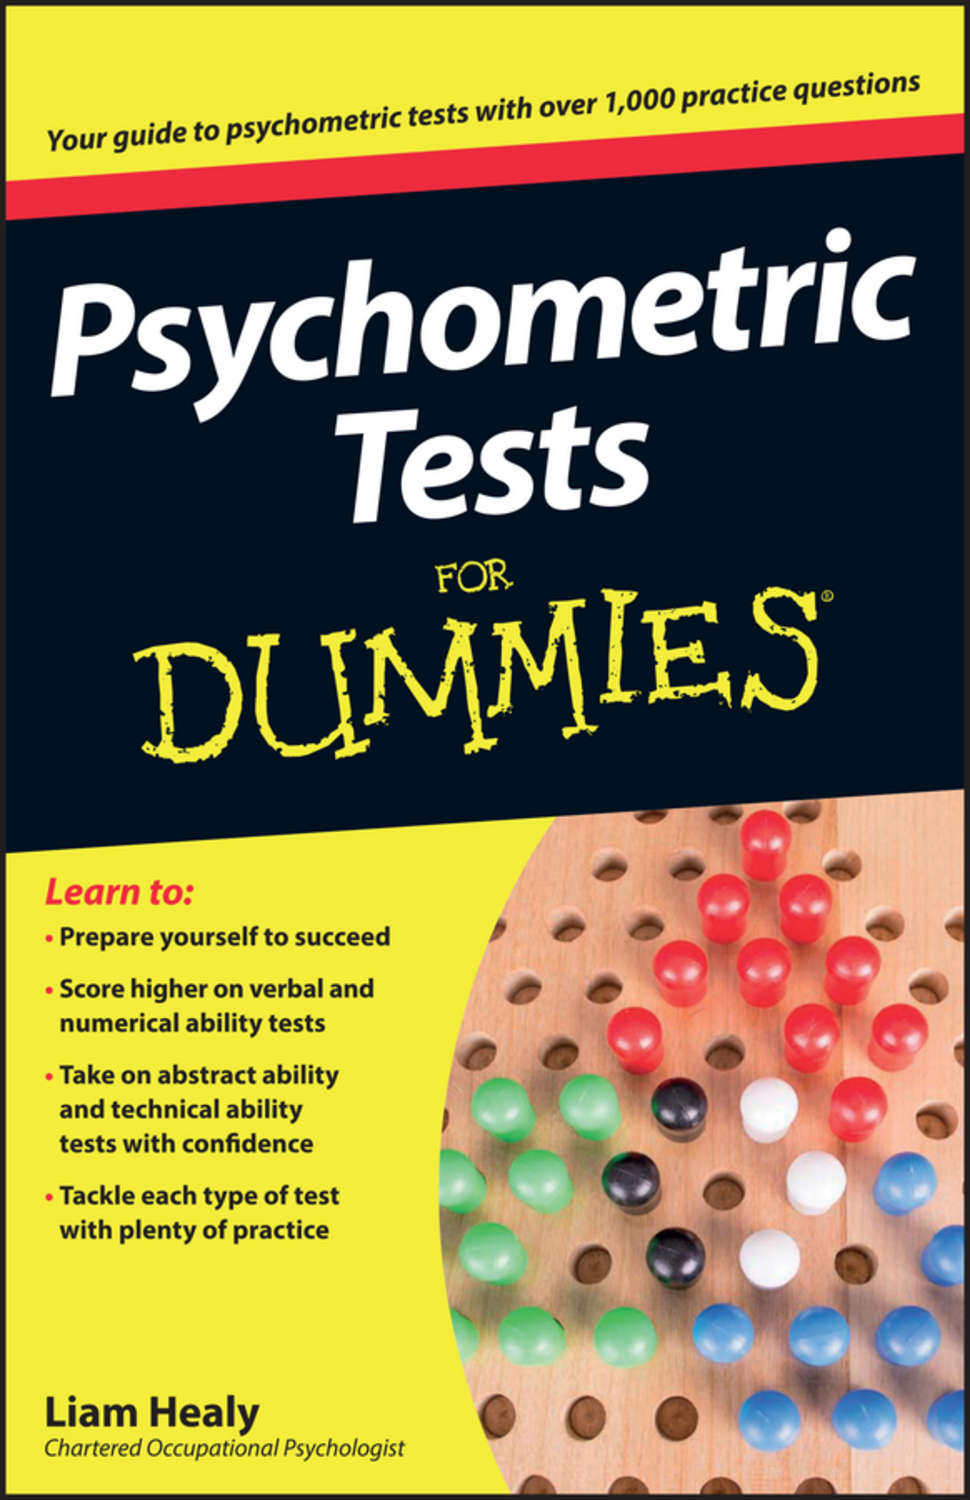 psychometric tests Free practice psychometric testing, tutoring, coaching, online tests examples with explanations - preparing you for aptitude tests & personality tests australian psychologists prepared all the material, tailored for every job and industry.